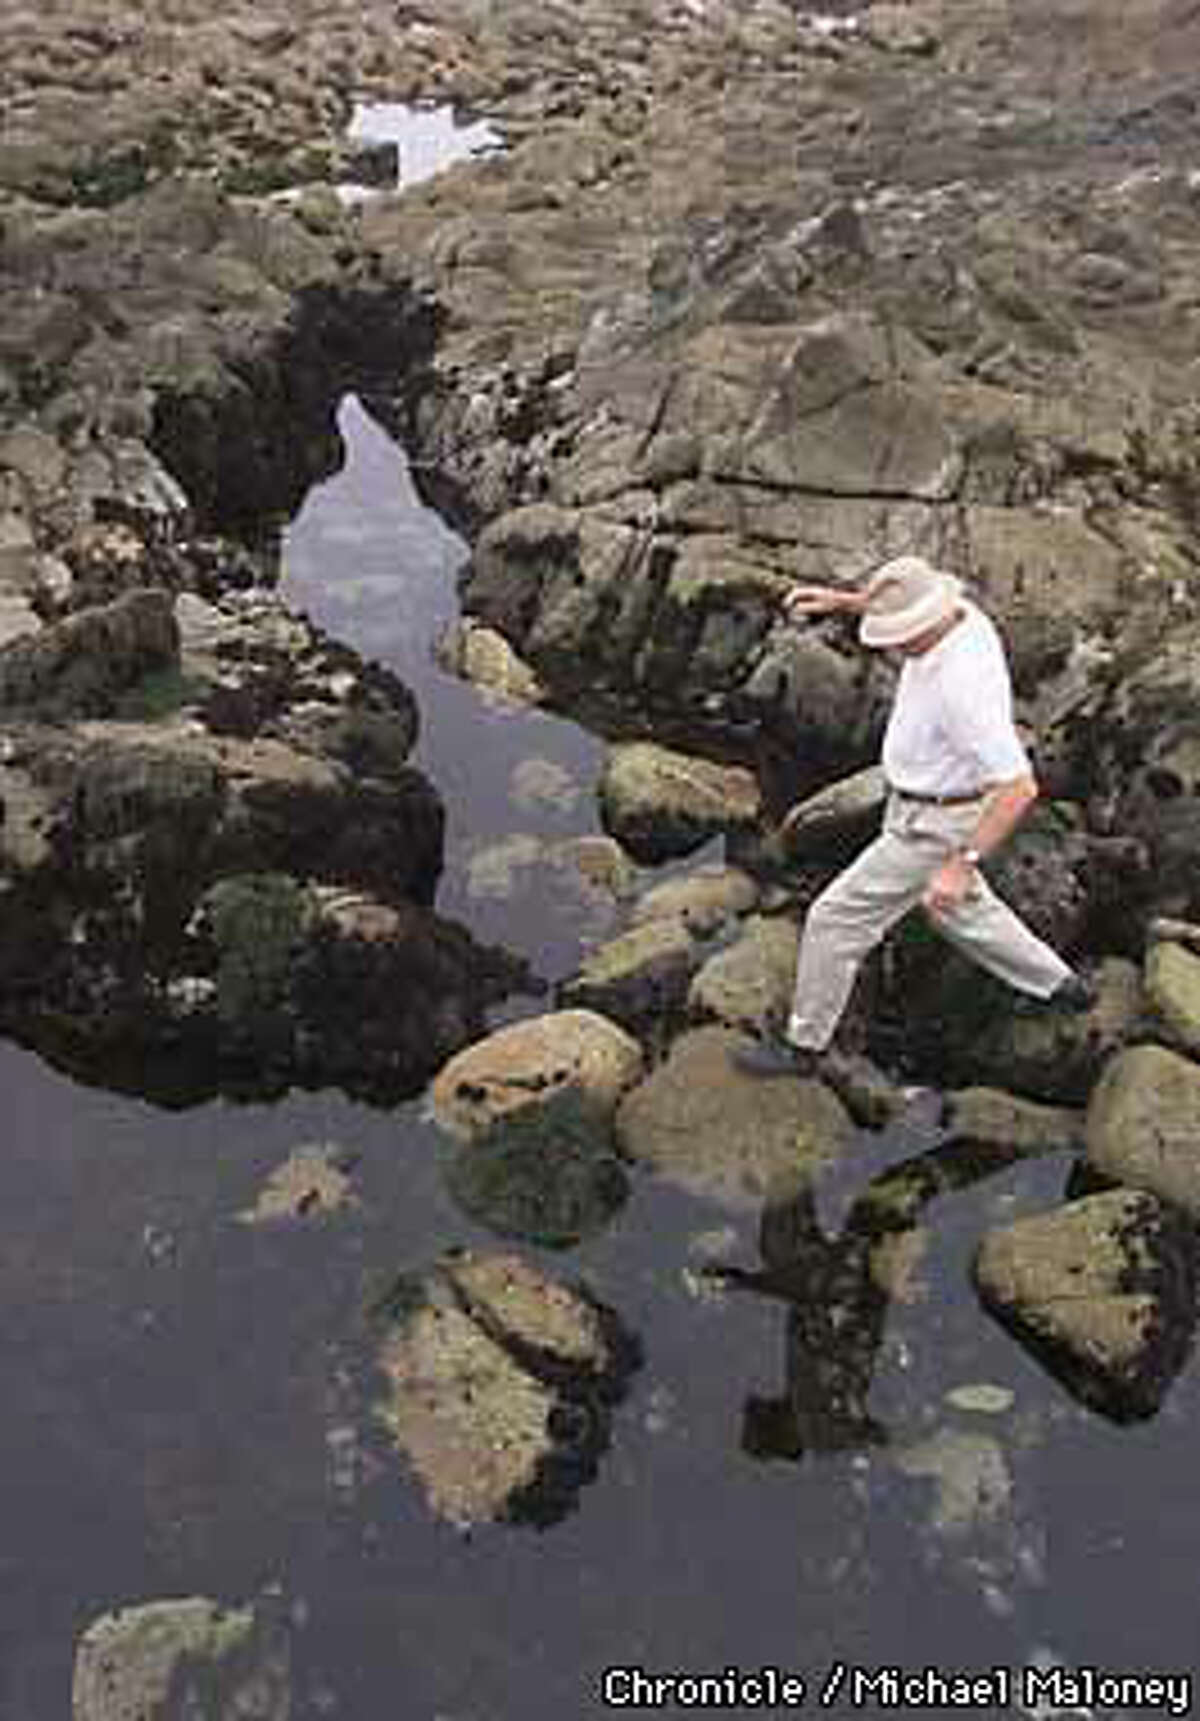 Only a few blocks from his home, Jim Willoughby walked by the Point Pinos tide pools, whose ecosystem, he says, should be better protected under current environmental laws. Chronicle Photo by Michael Maloney